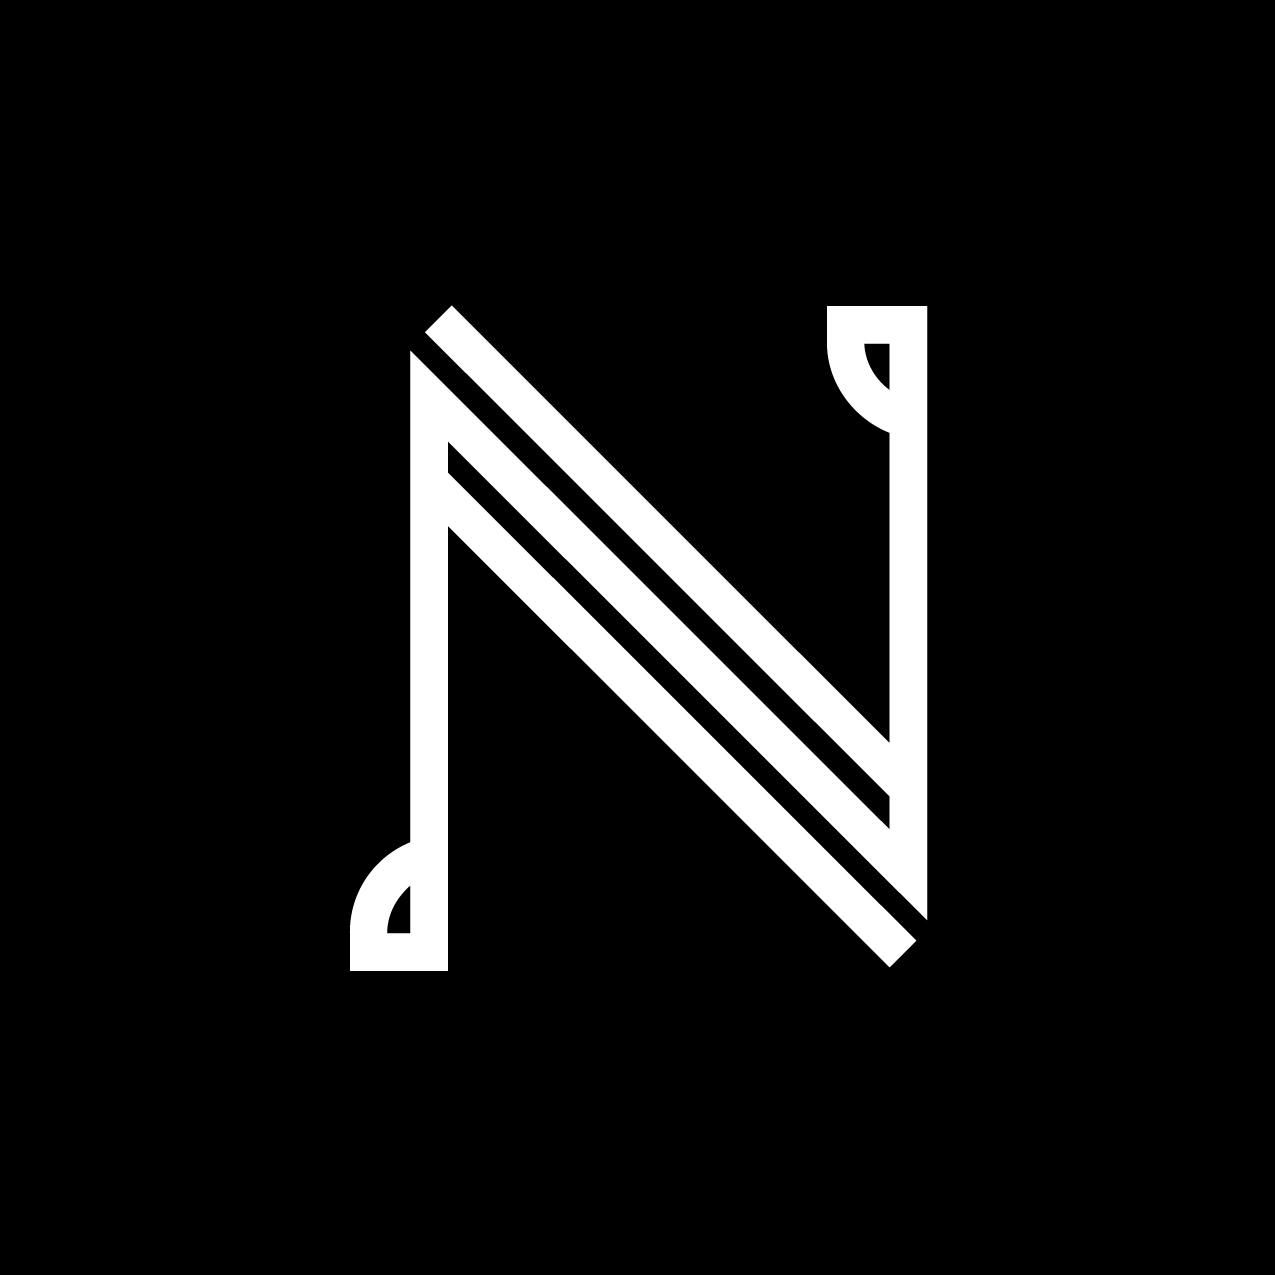 Letter N13 Design by Furia